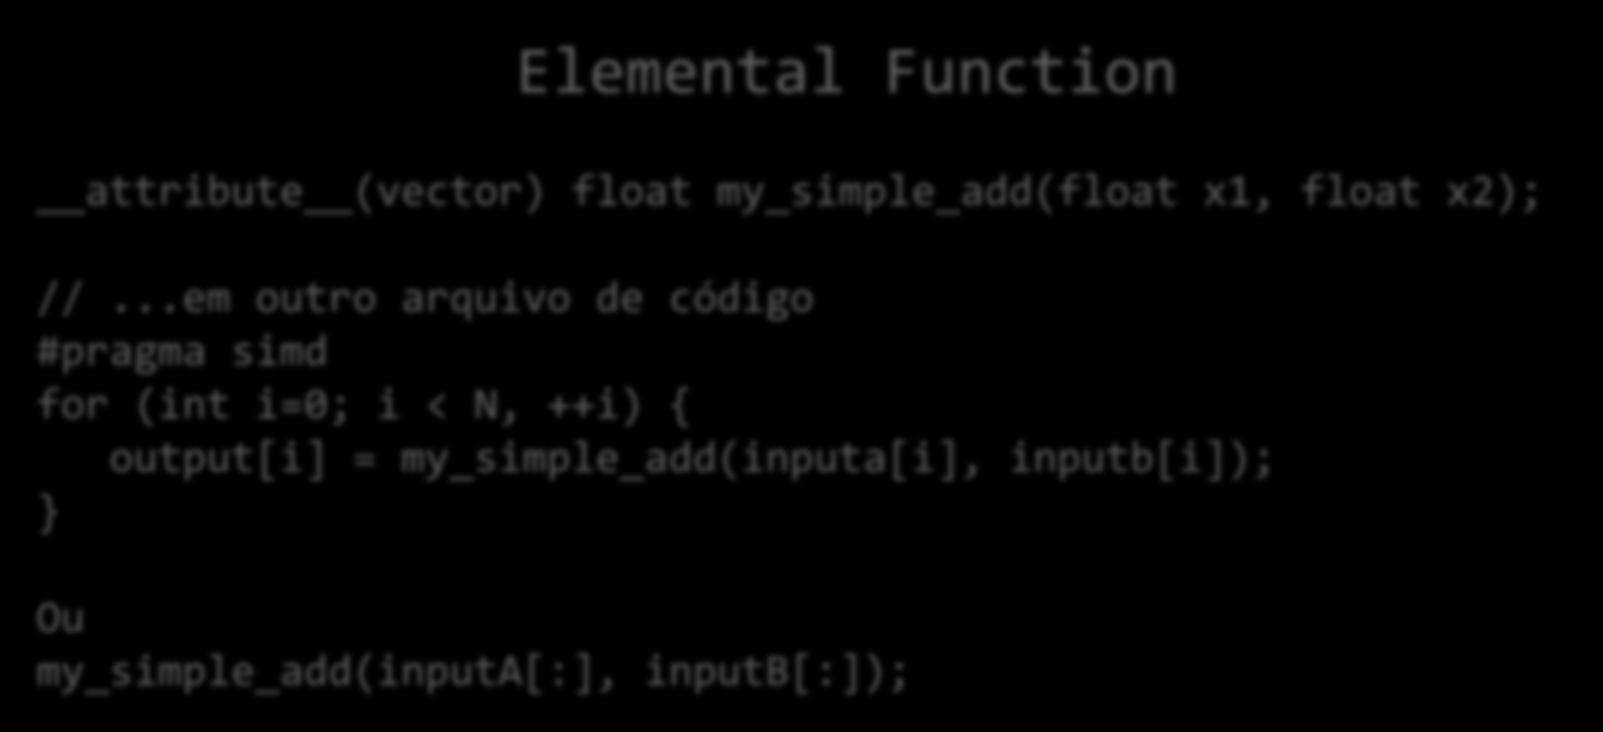 Vetorização com Intel Cilk Plus Elemental functions Lib X float my_simple_add(float x1, float x2){ return x1 + x2; } Elemental Function attribute (vector) float my_simple_add(float